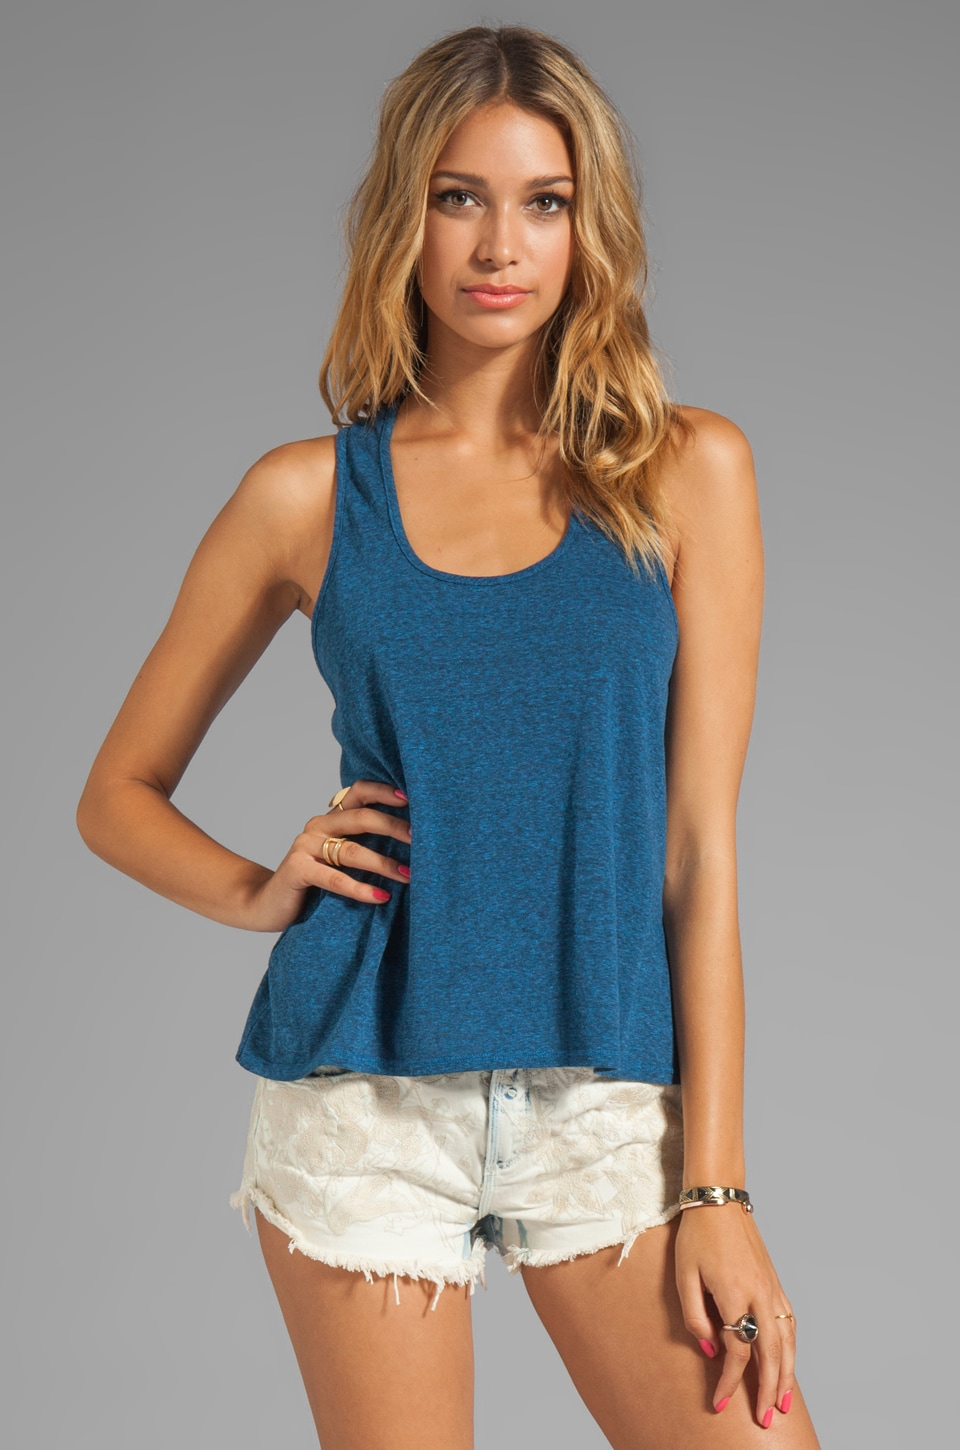 Daftbird Heather Loose Tank in Bluebird